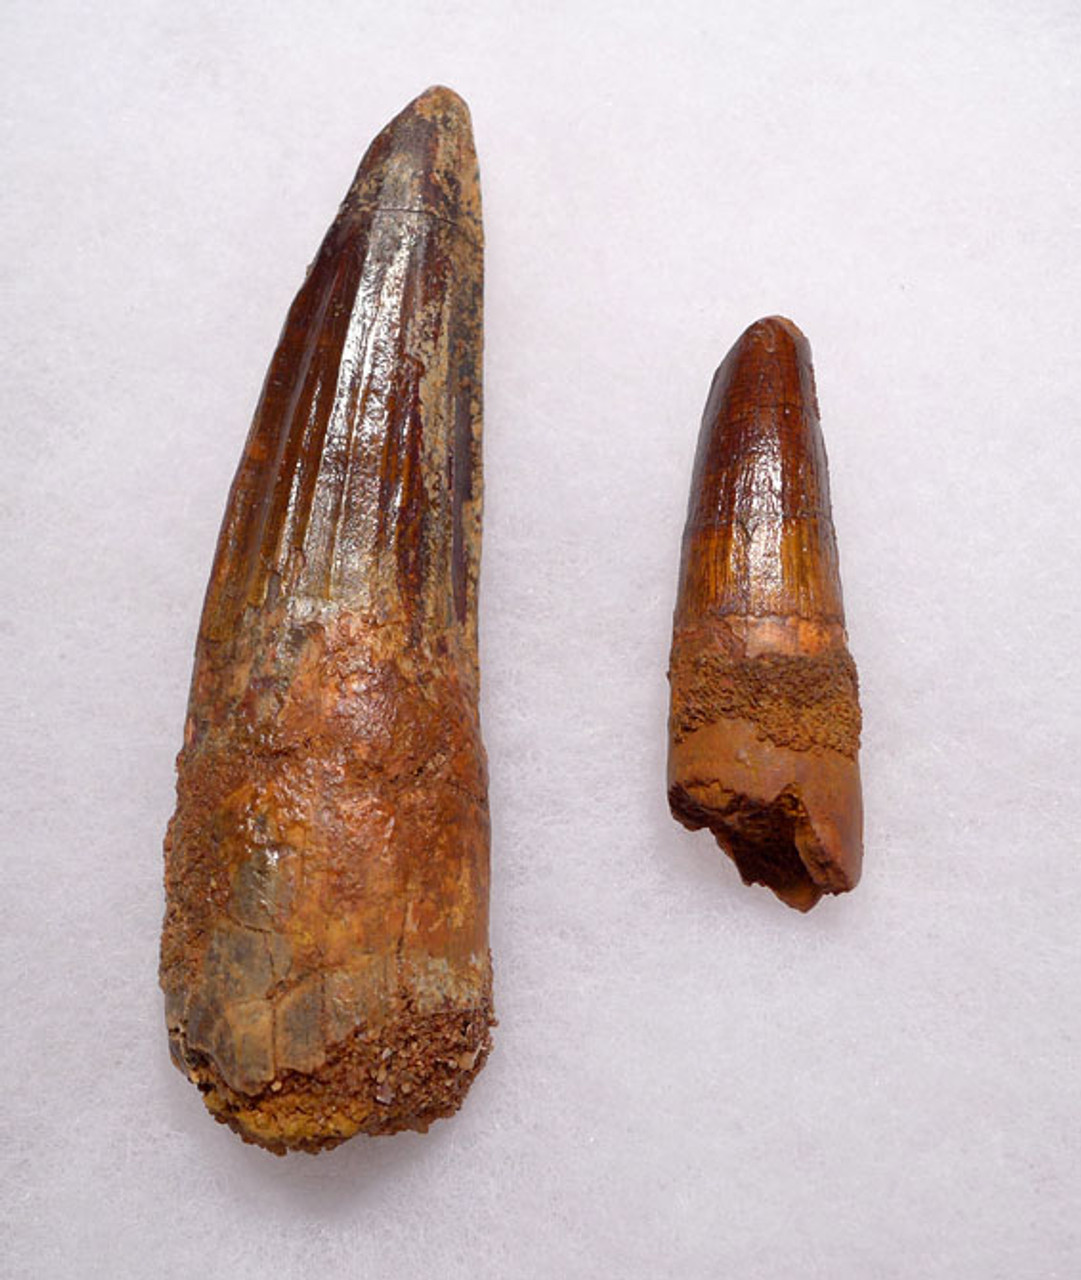 DT5-264 - SET OF TWO SPINOSAURUS ADULT AND BABY DINOSAUR FOSSIL TEETH